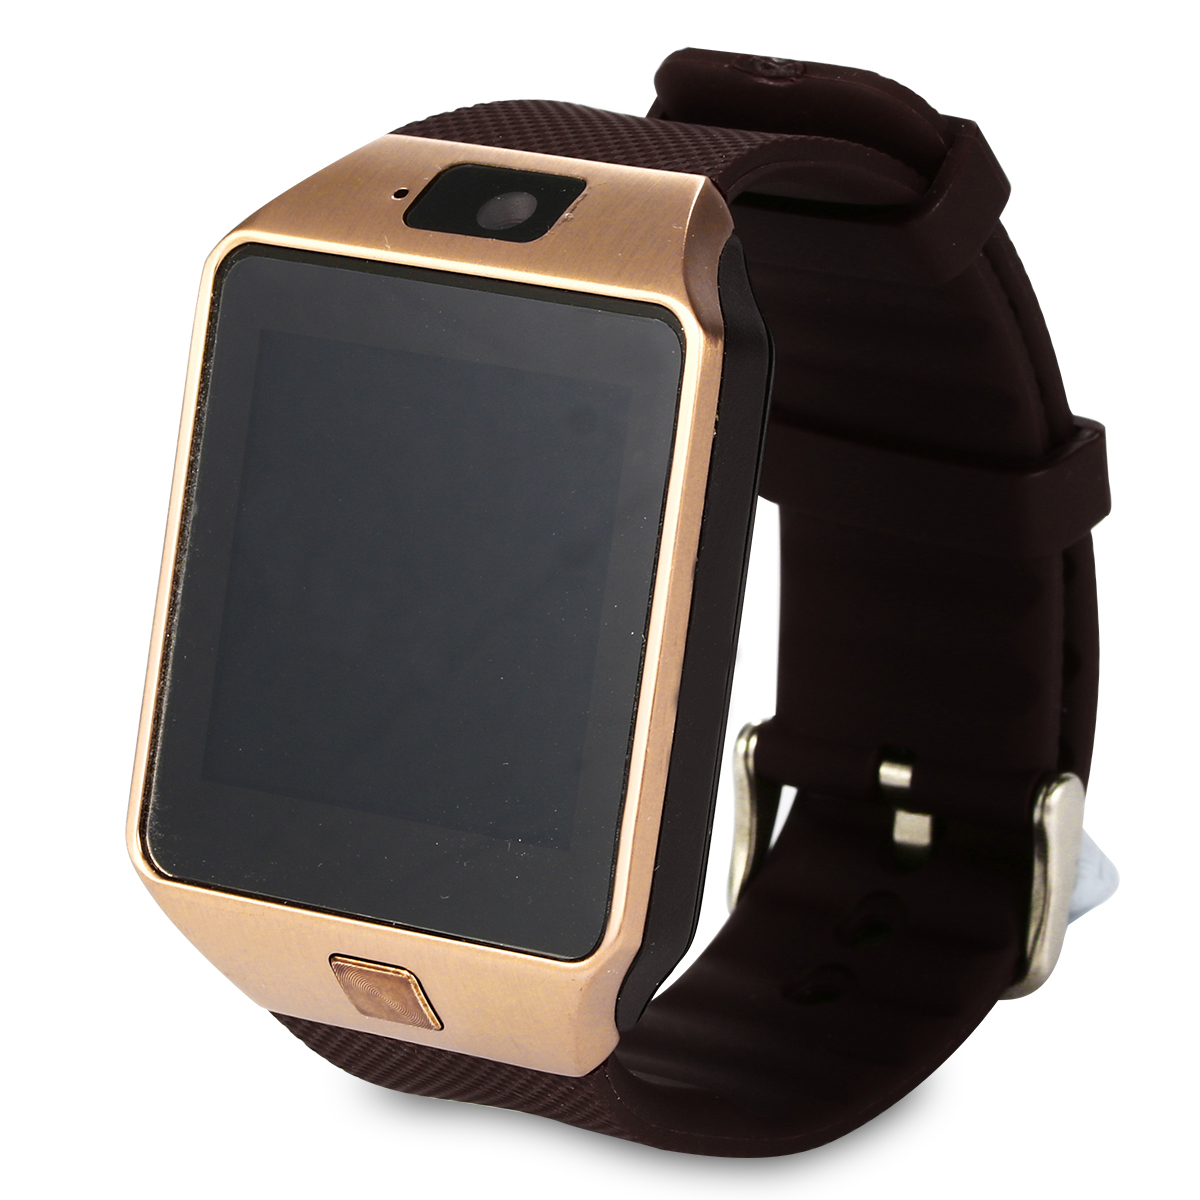 Bluetooth Smart Wrist Watch Phone Mate For iPhone 5 5S 6 Plus Android IOS AC256<br><br>Aliexpress